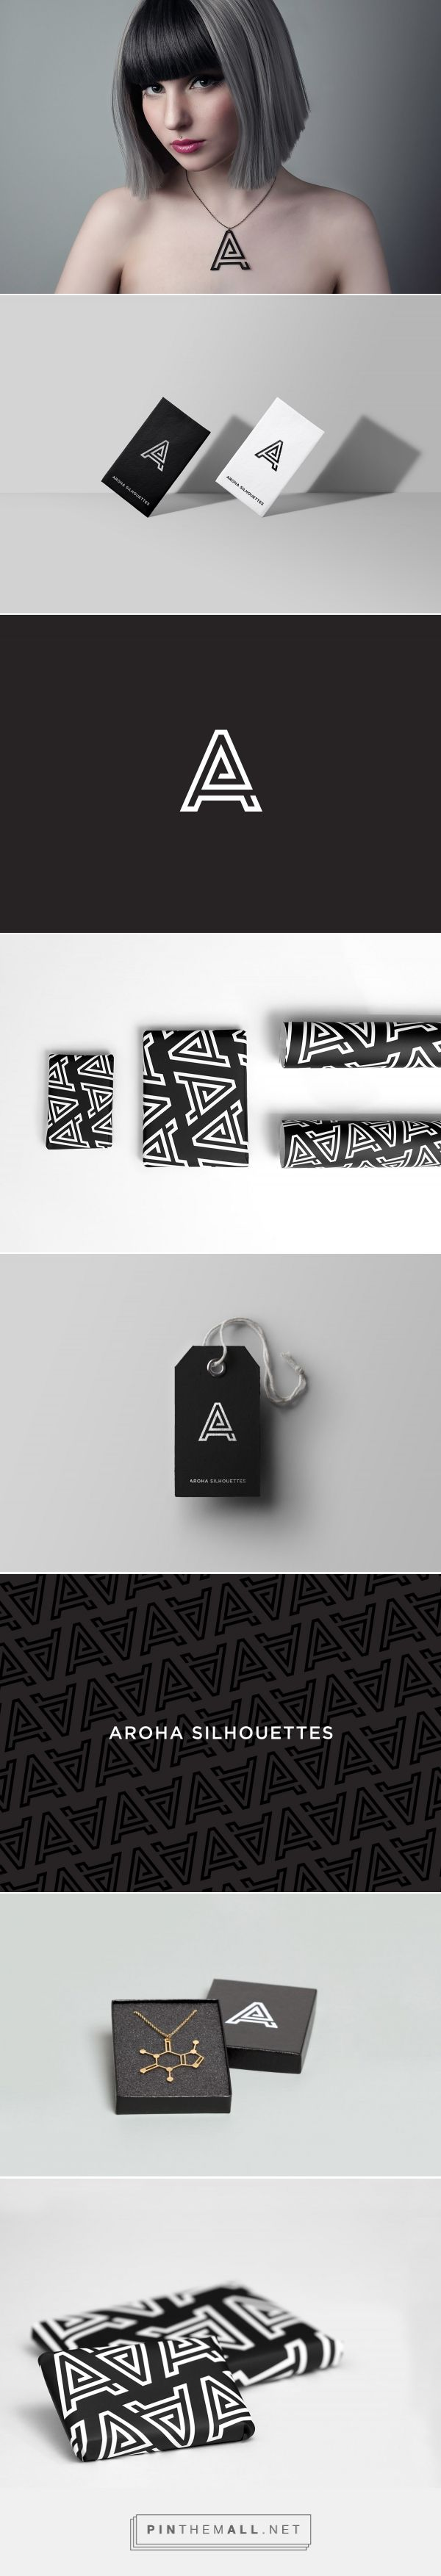 Aroha Silhouettes Branding by We Are Branch | Fivestar Branding – Design and Branding Agency & Inspiration Gallery